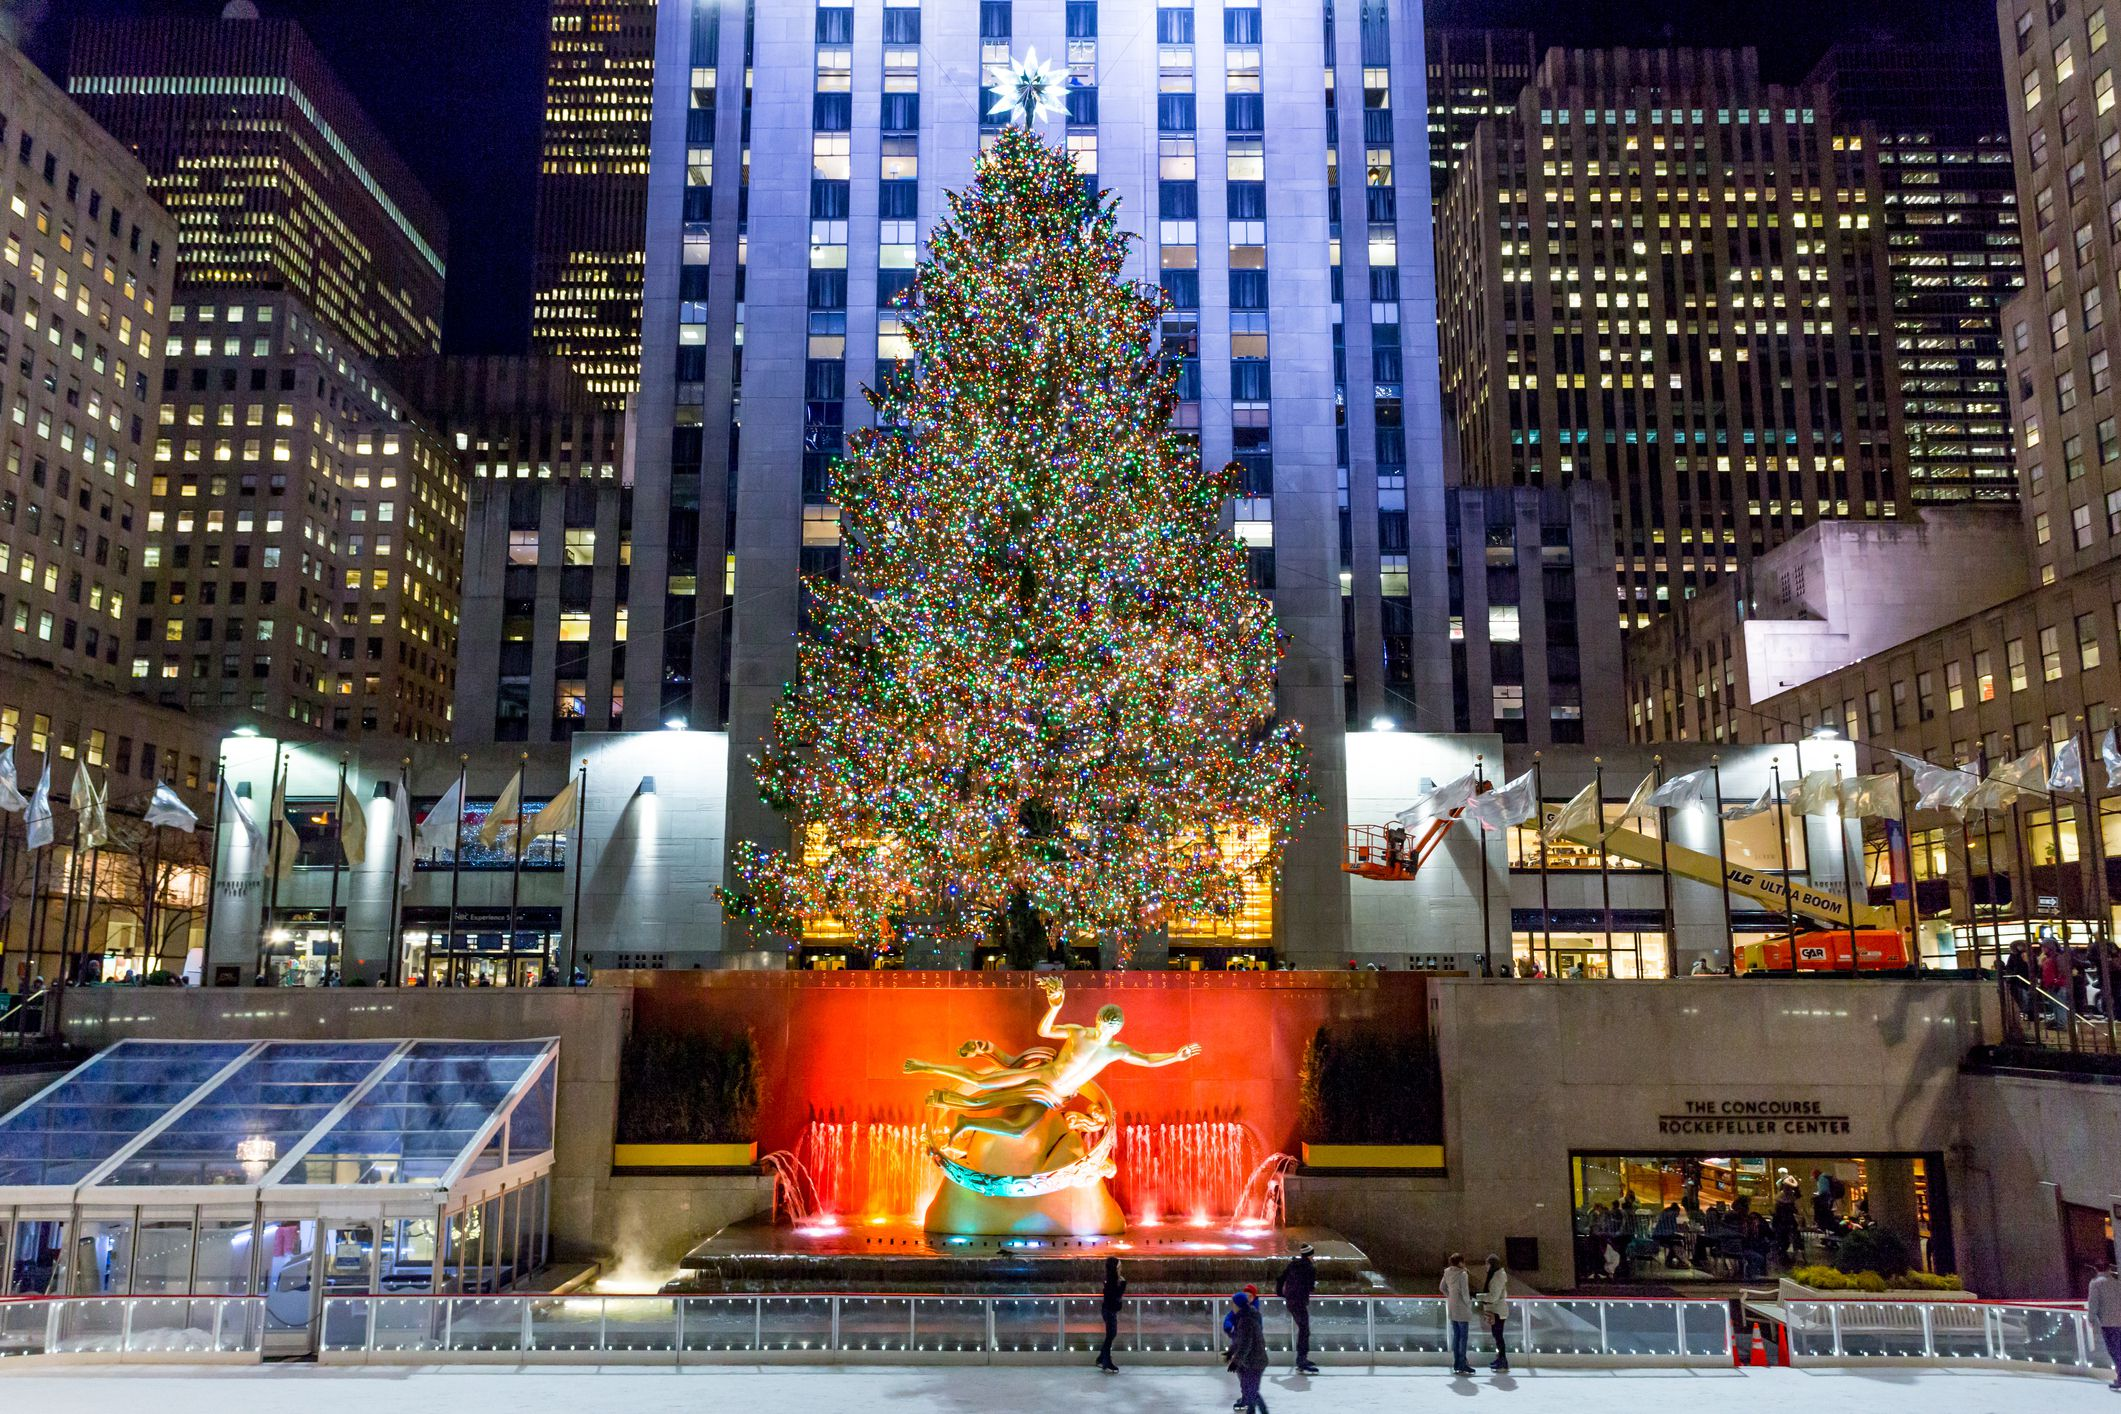 Brightly illuminated the Rockefeller Plaza ice skating rink filled with tourists and locals skating and watching, with a Christmas tree during the holiday season.